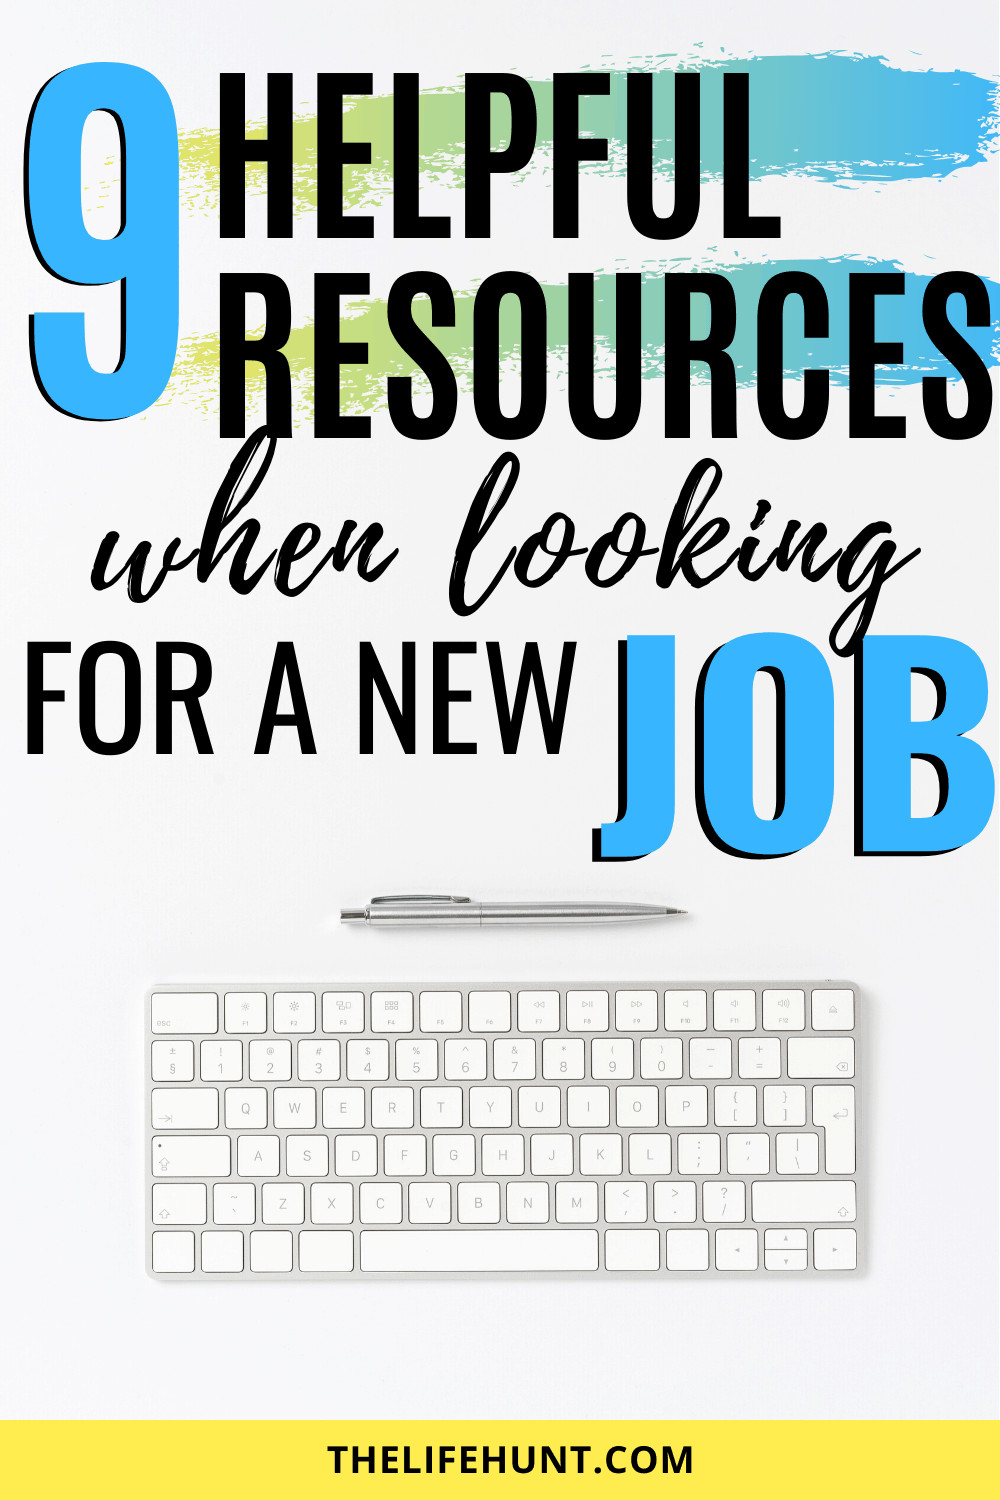 helpful resources with keyboard